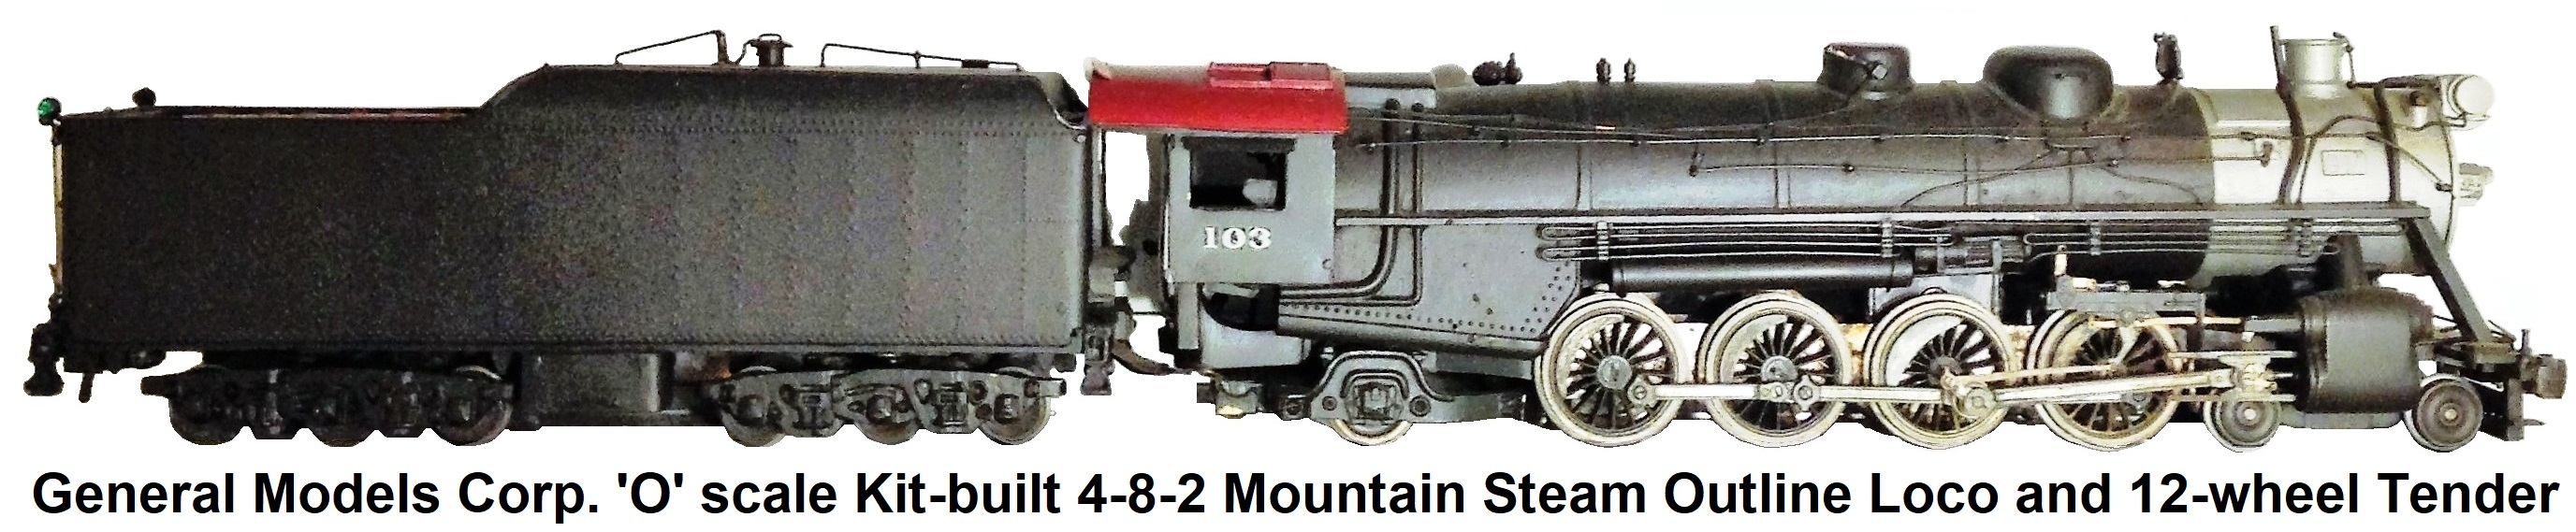 General Models Corp. 'O' scale Kit-built 4-8-2 Mountain loco and 12-wheel tender